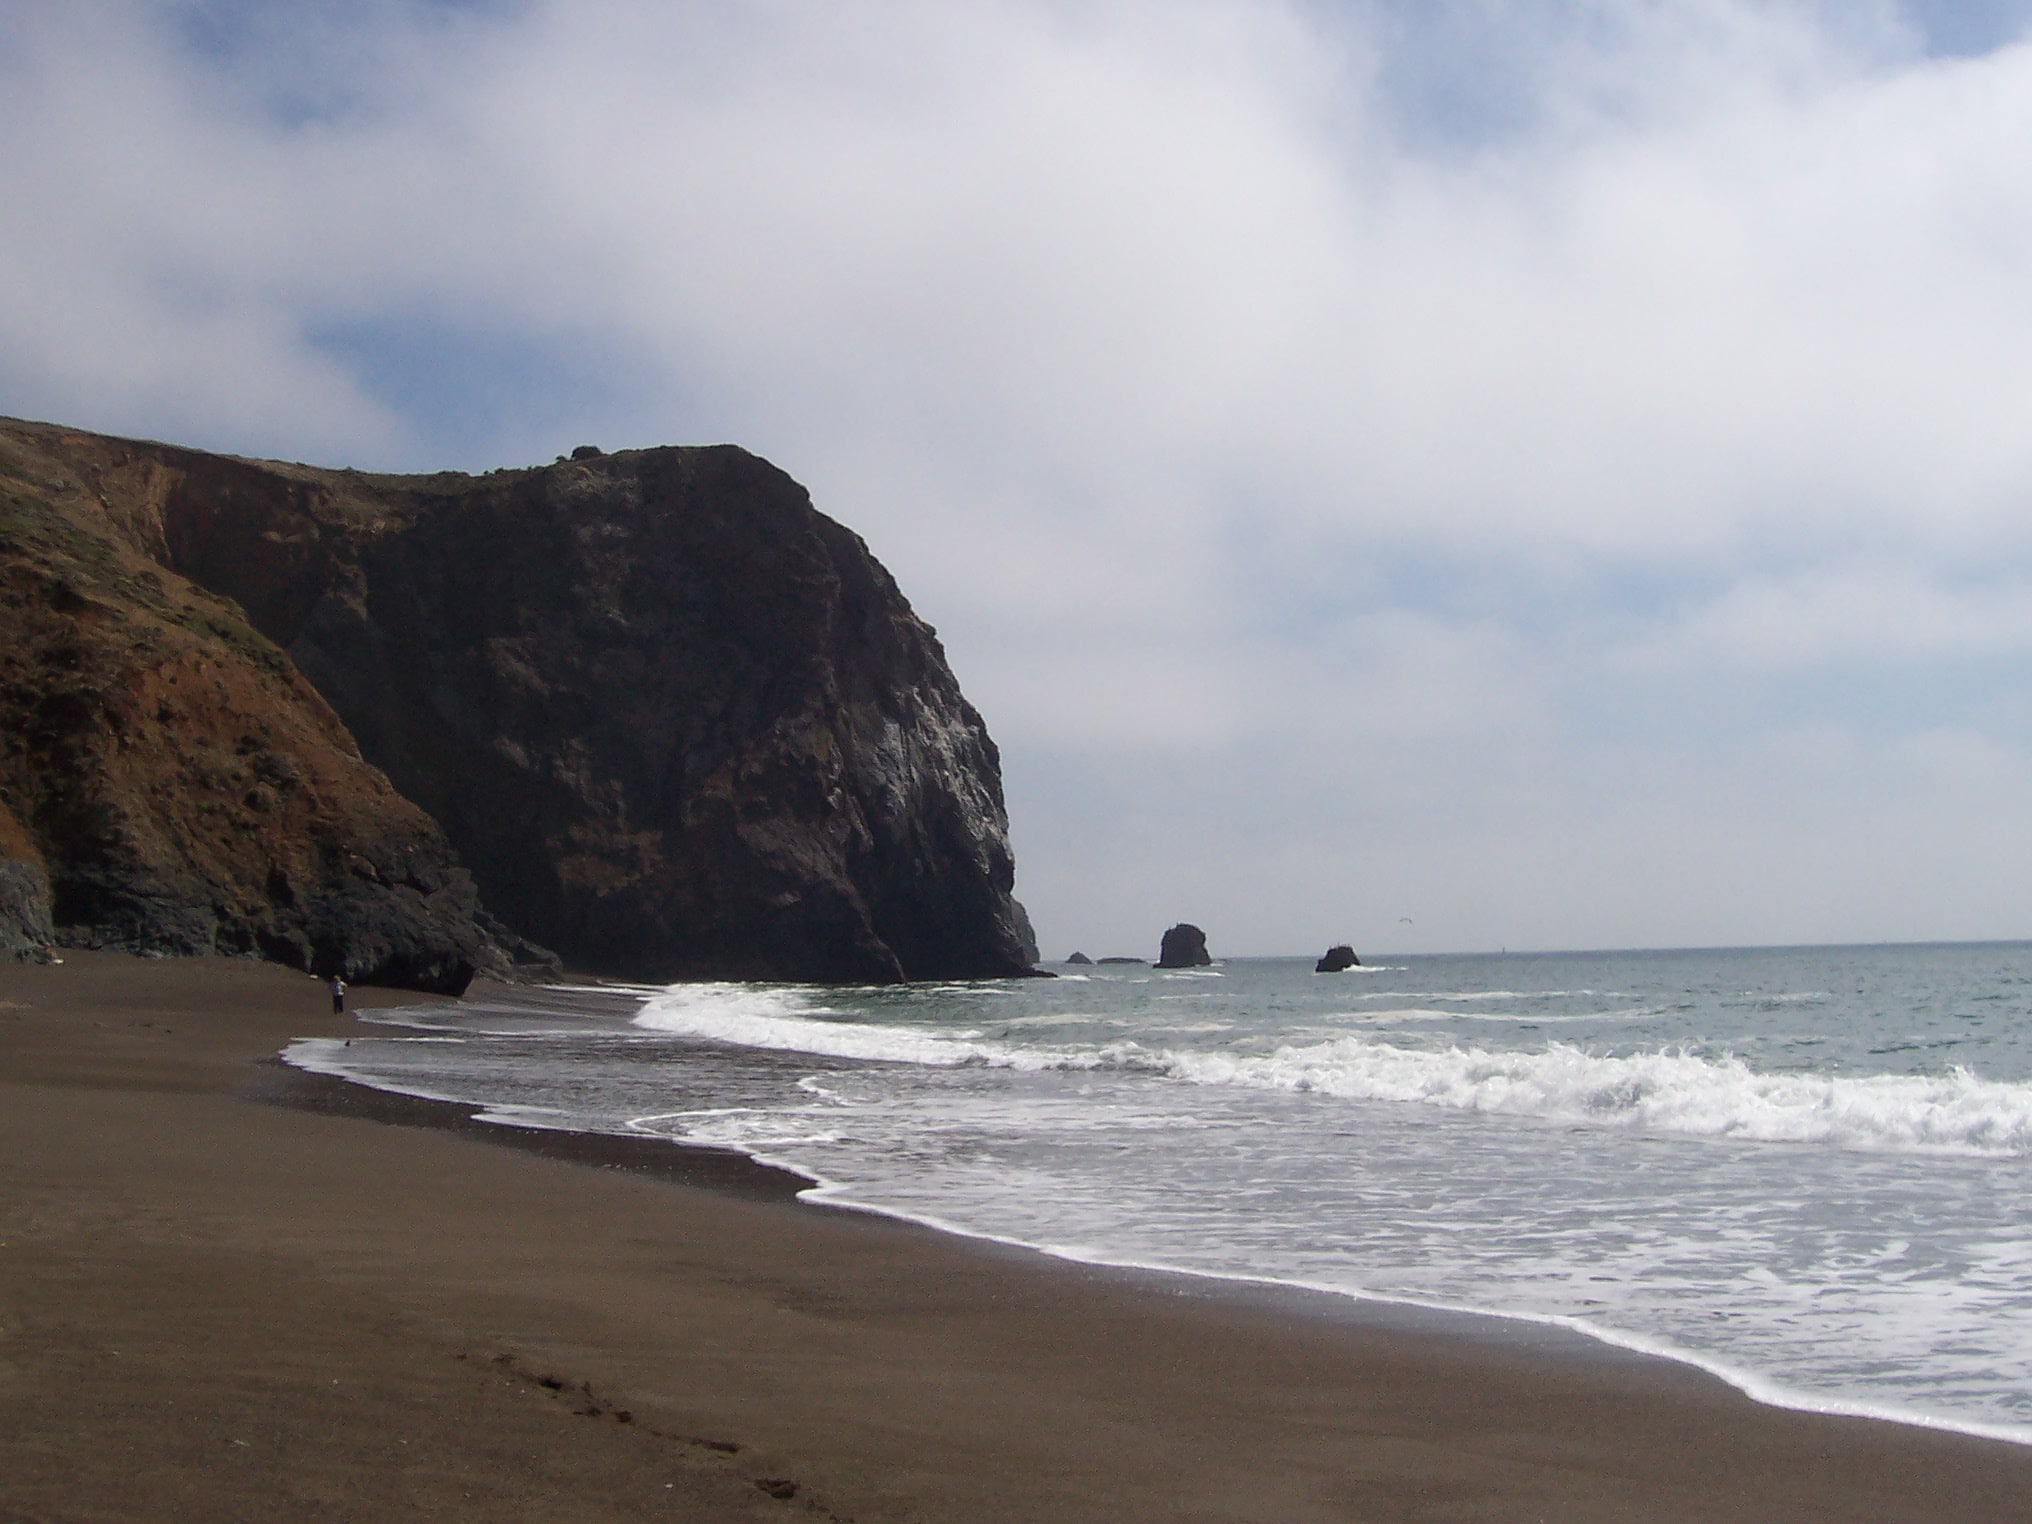 A beach on the way North from San Francisco (photo by Patricia A Leslie, artist / author)